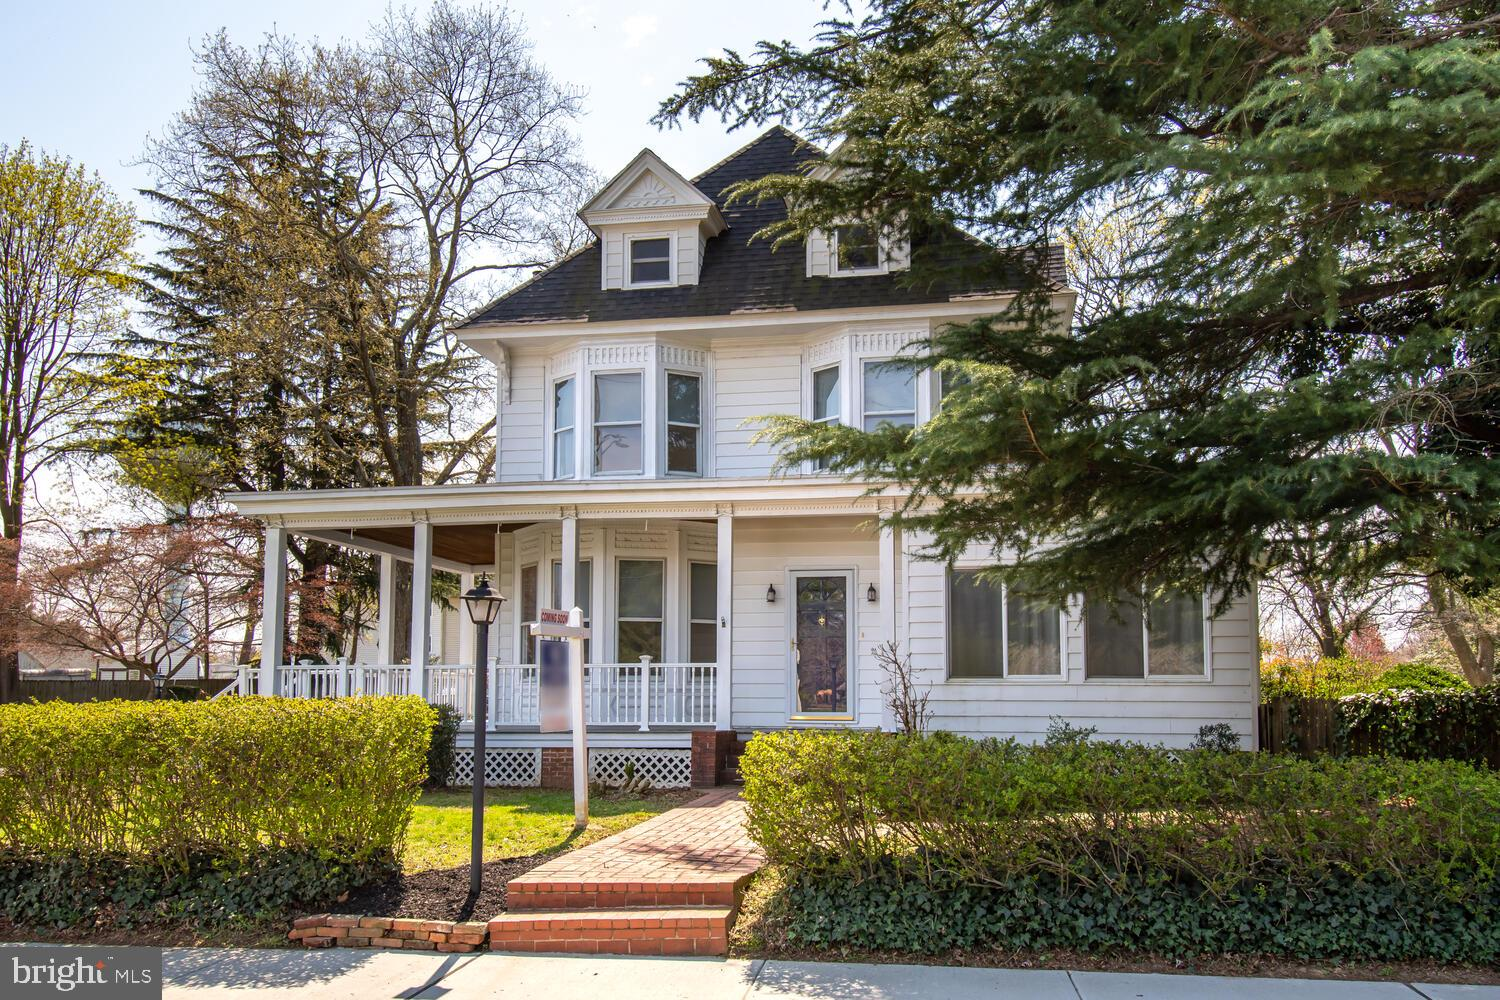 Lovely Victorian Home with original details, gorgeous moldings, staircase, large windows bring in lo